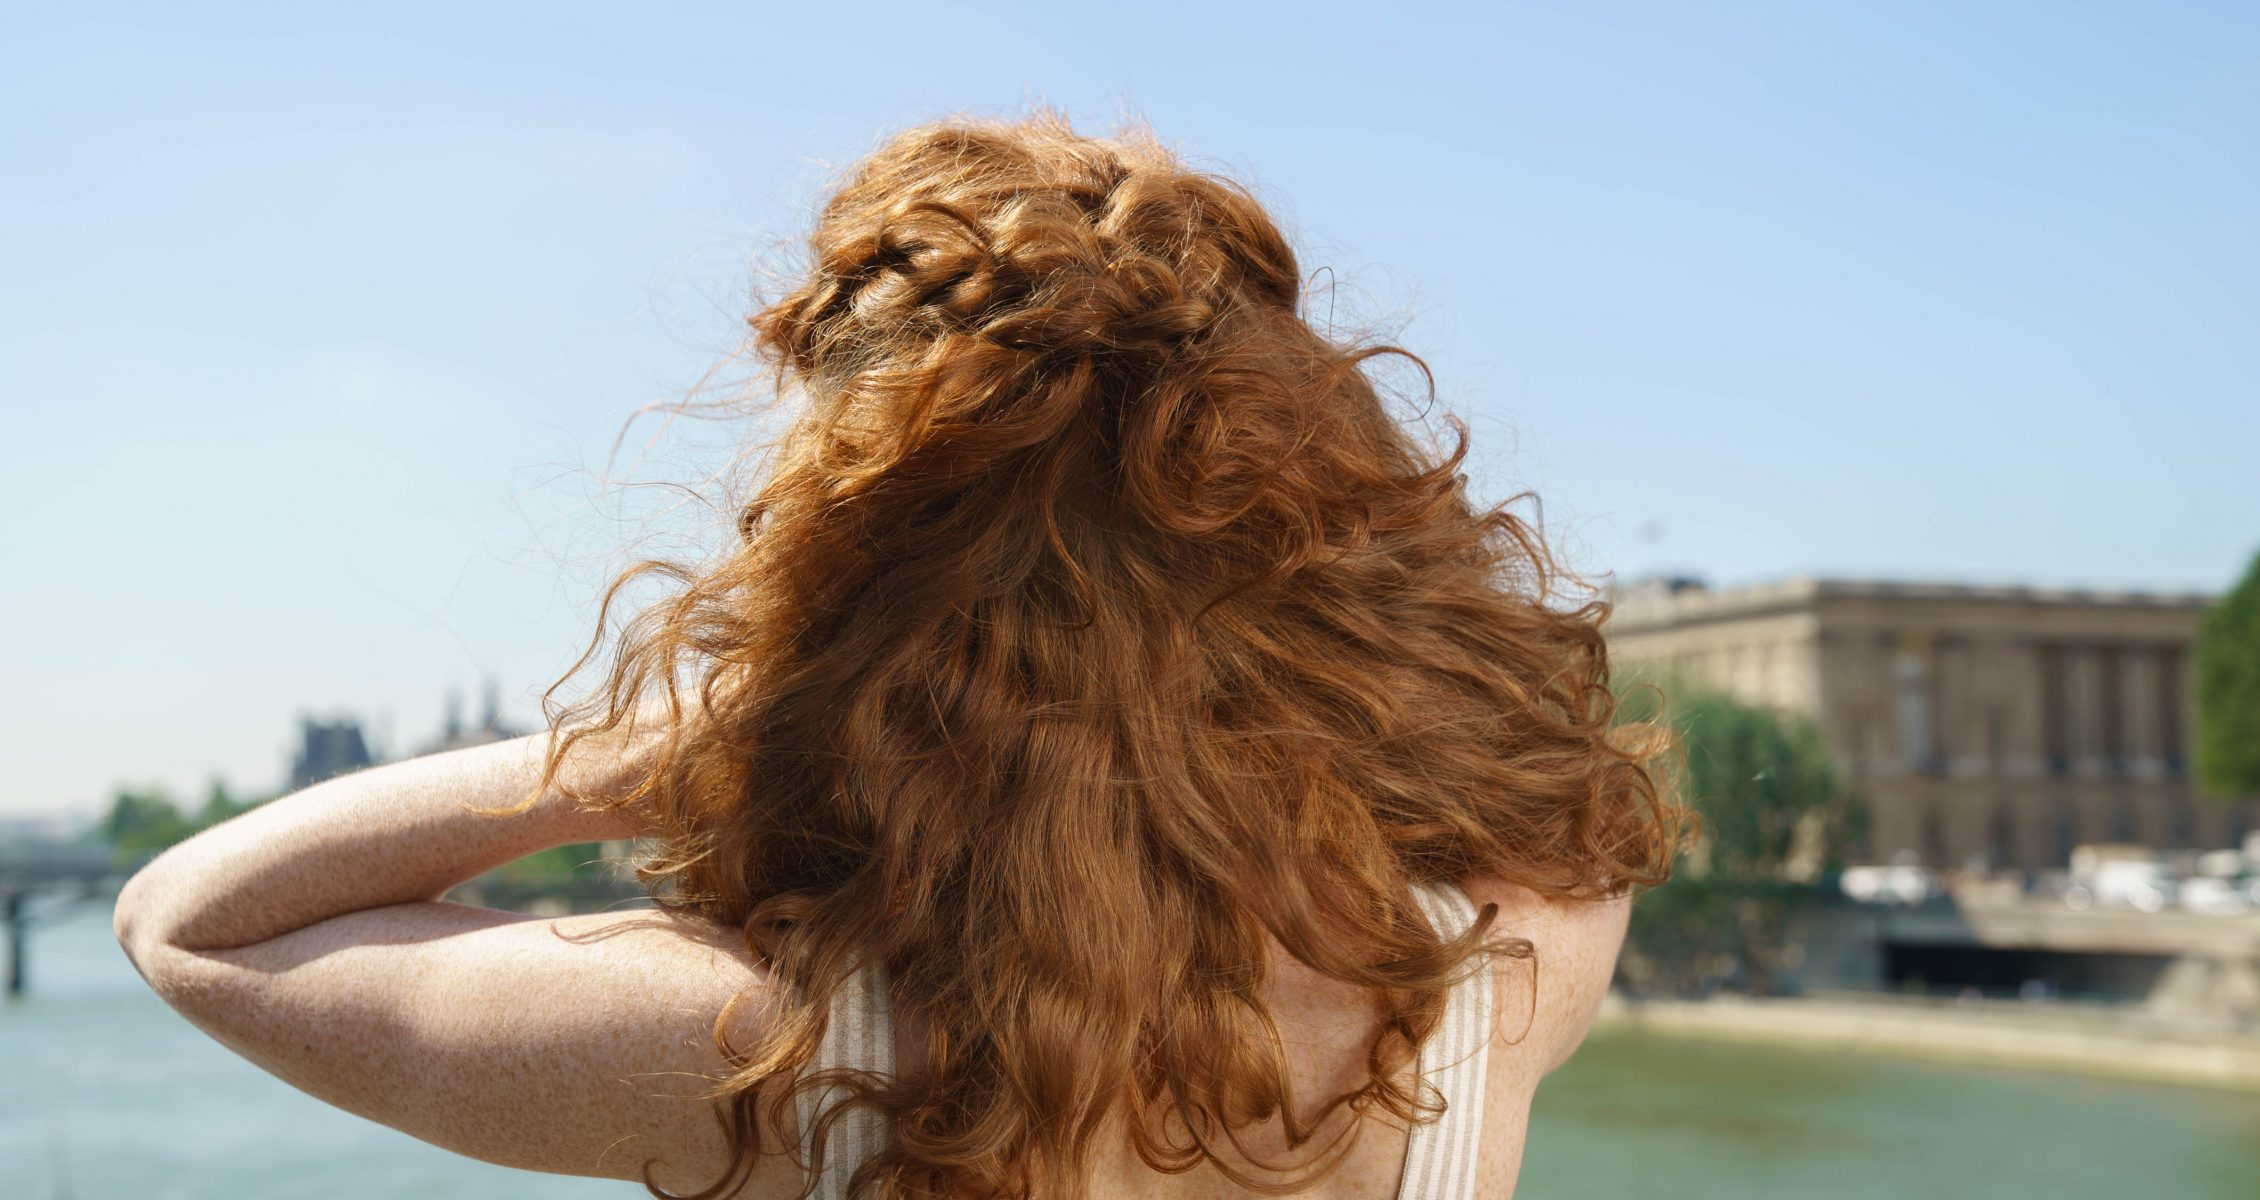 Prose model with red, wavy hair with her back to the camera and her hair blowing in the breeze